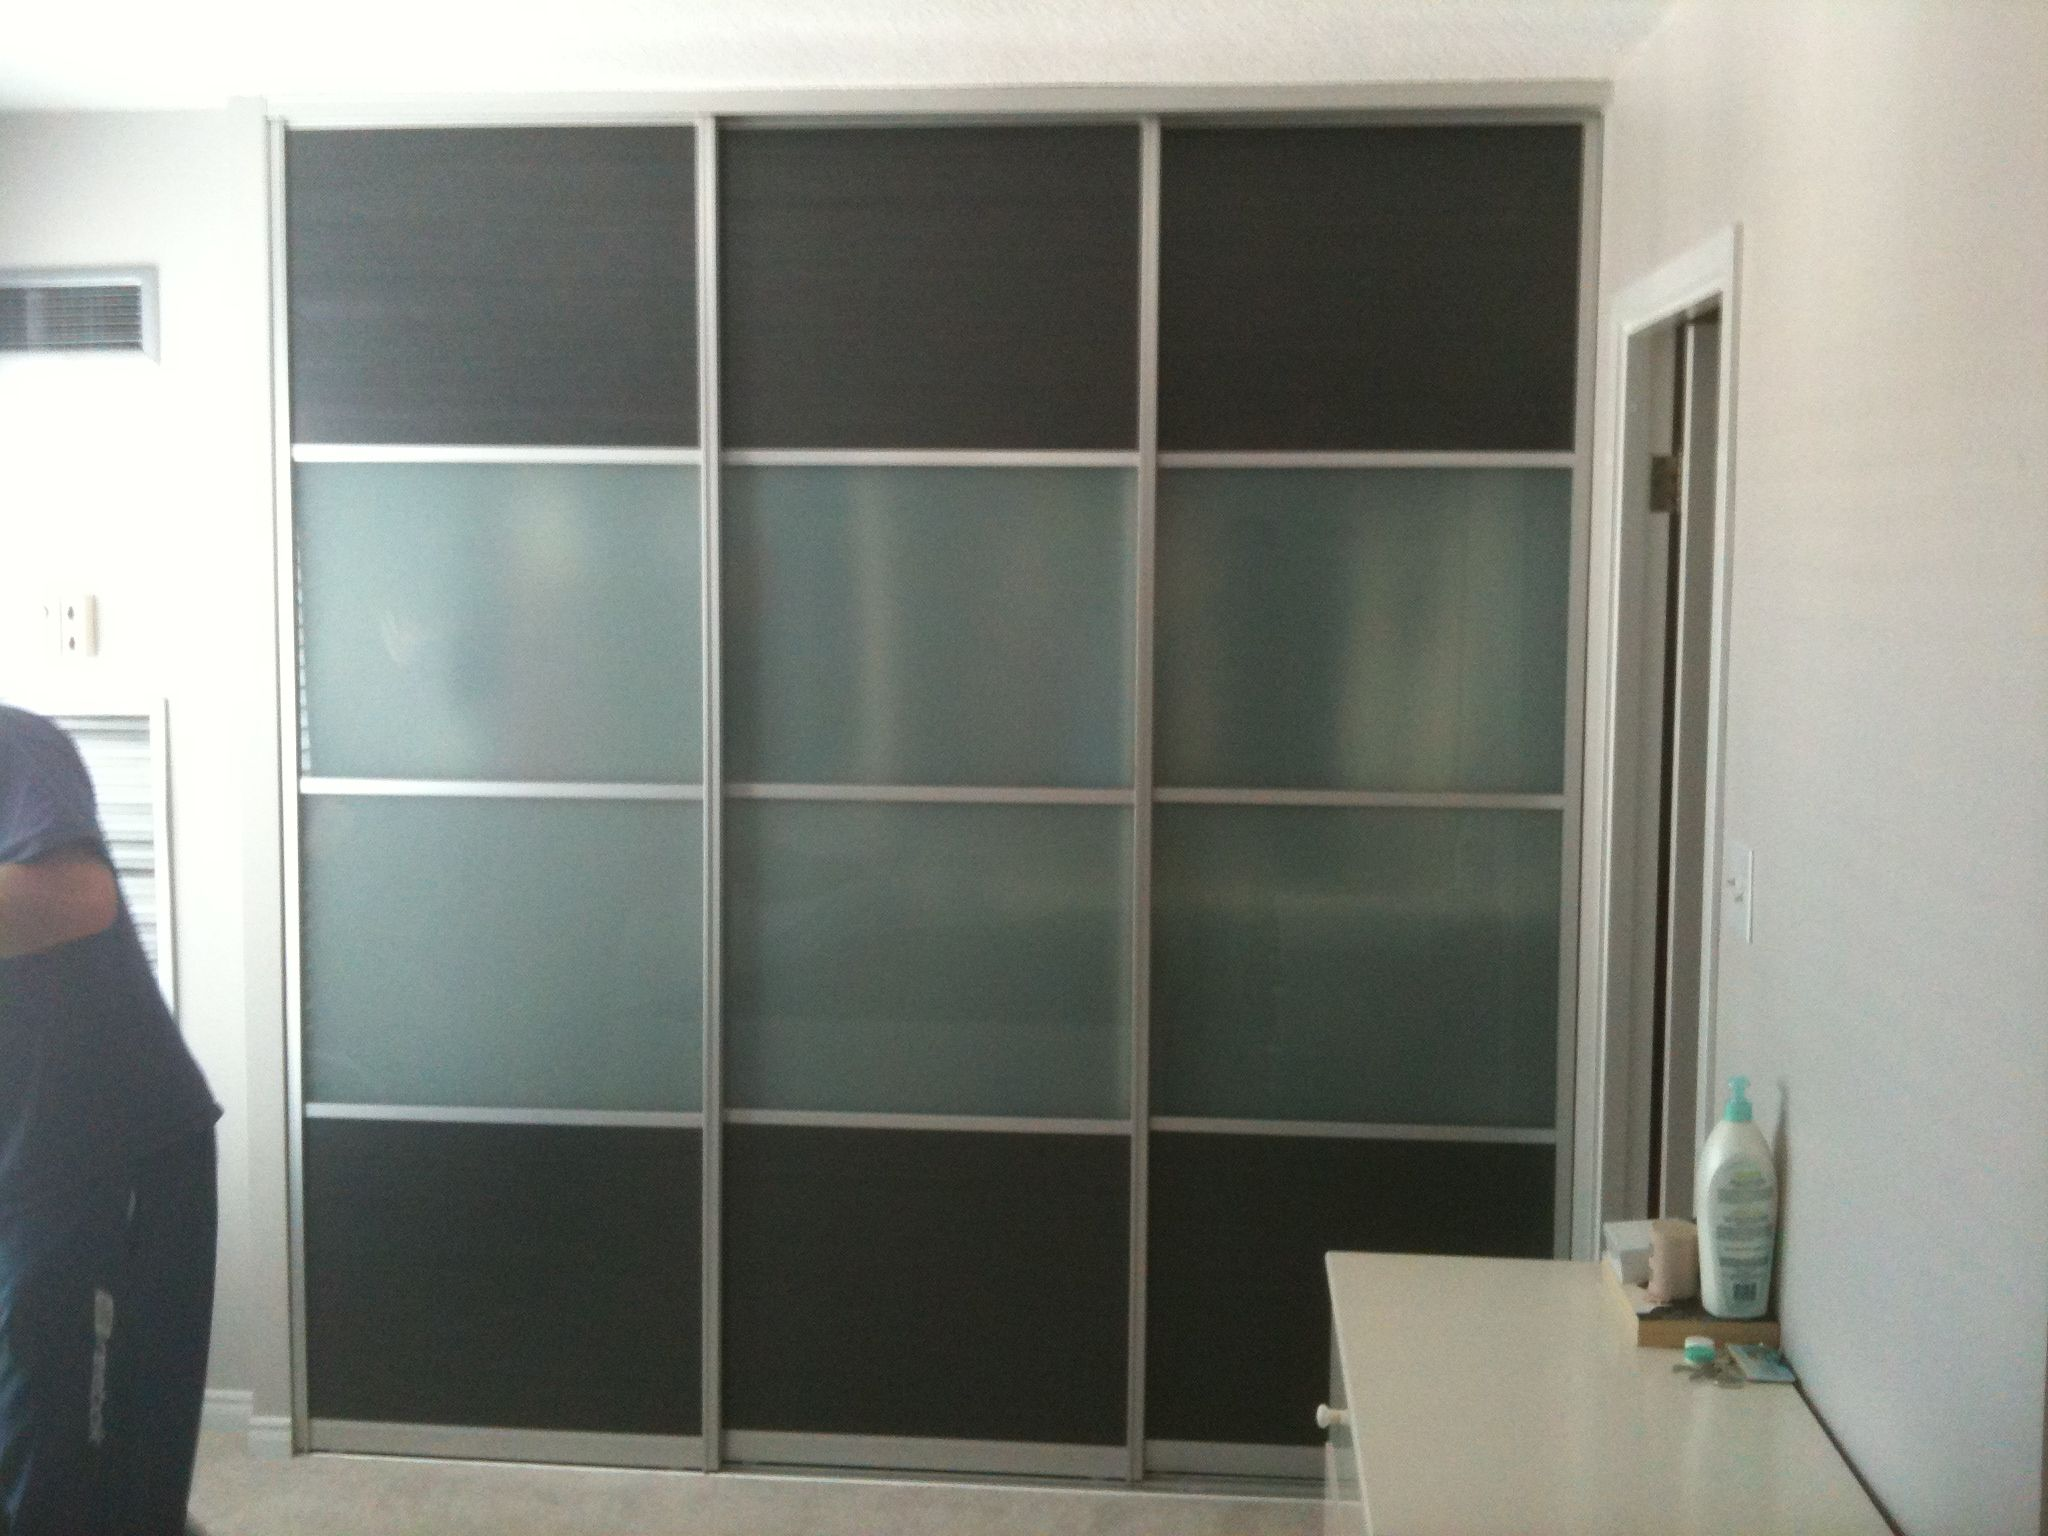 trend closet of modern sliding track doors hollow century lamps the marvelous panel mid and styledesign core sasg uncategorized